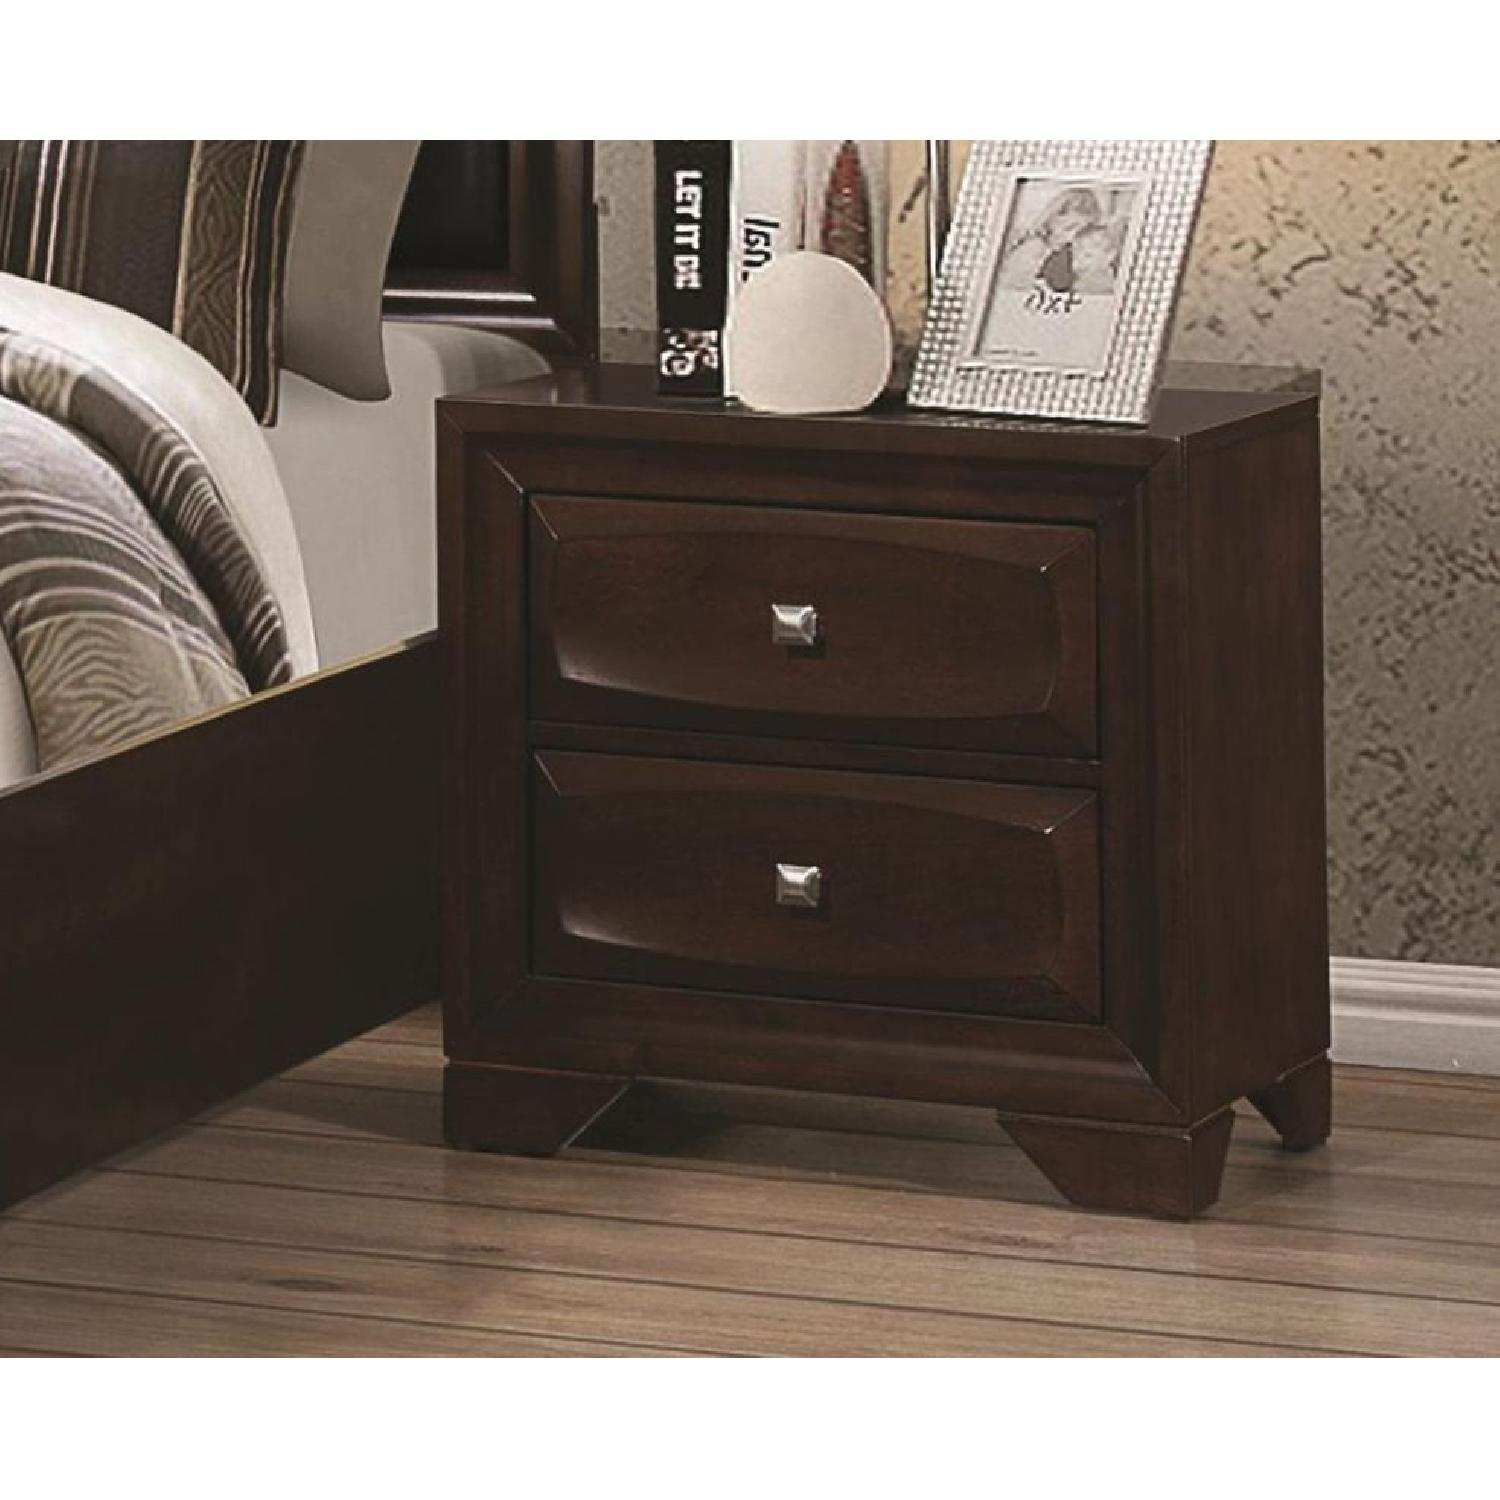 Nightstand in Cappuccino w/ Drawer Front Design - image-2